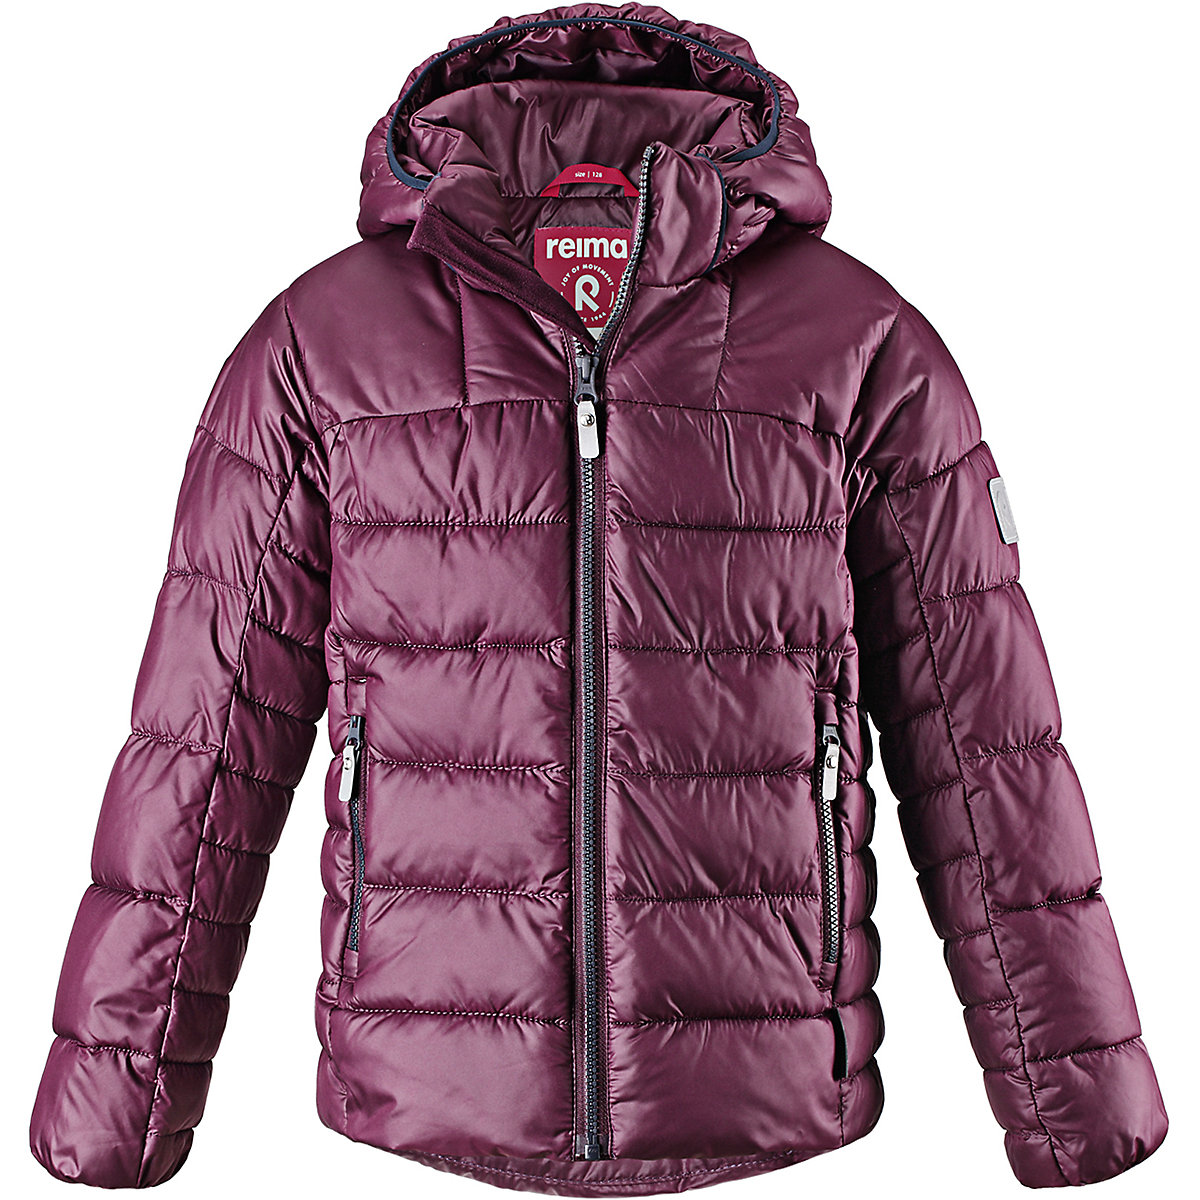 REIMA Jackets 8689691 for girls polyester winter  fur clothes girl vector brand ski jackets men outdoor thermal waterproof snowboard skiing jackets climbing snow winter clothes hxf70002